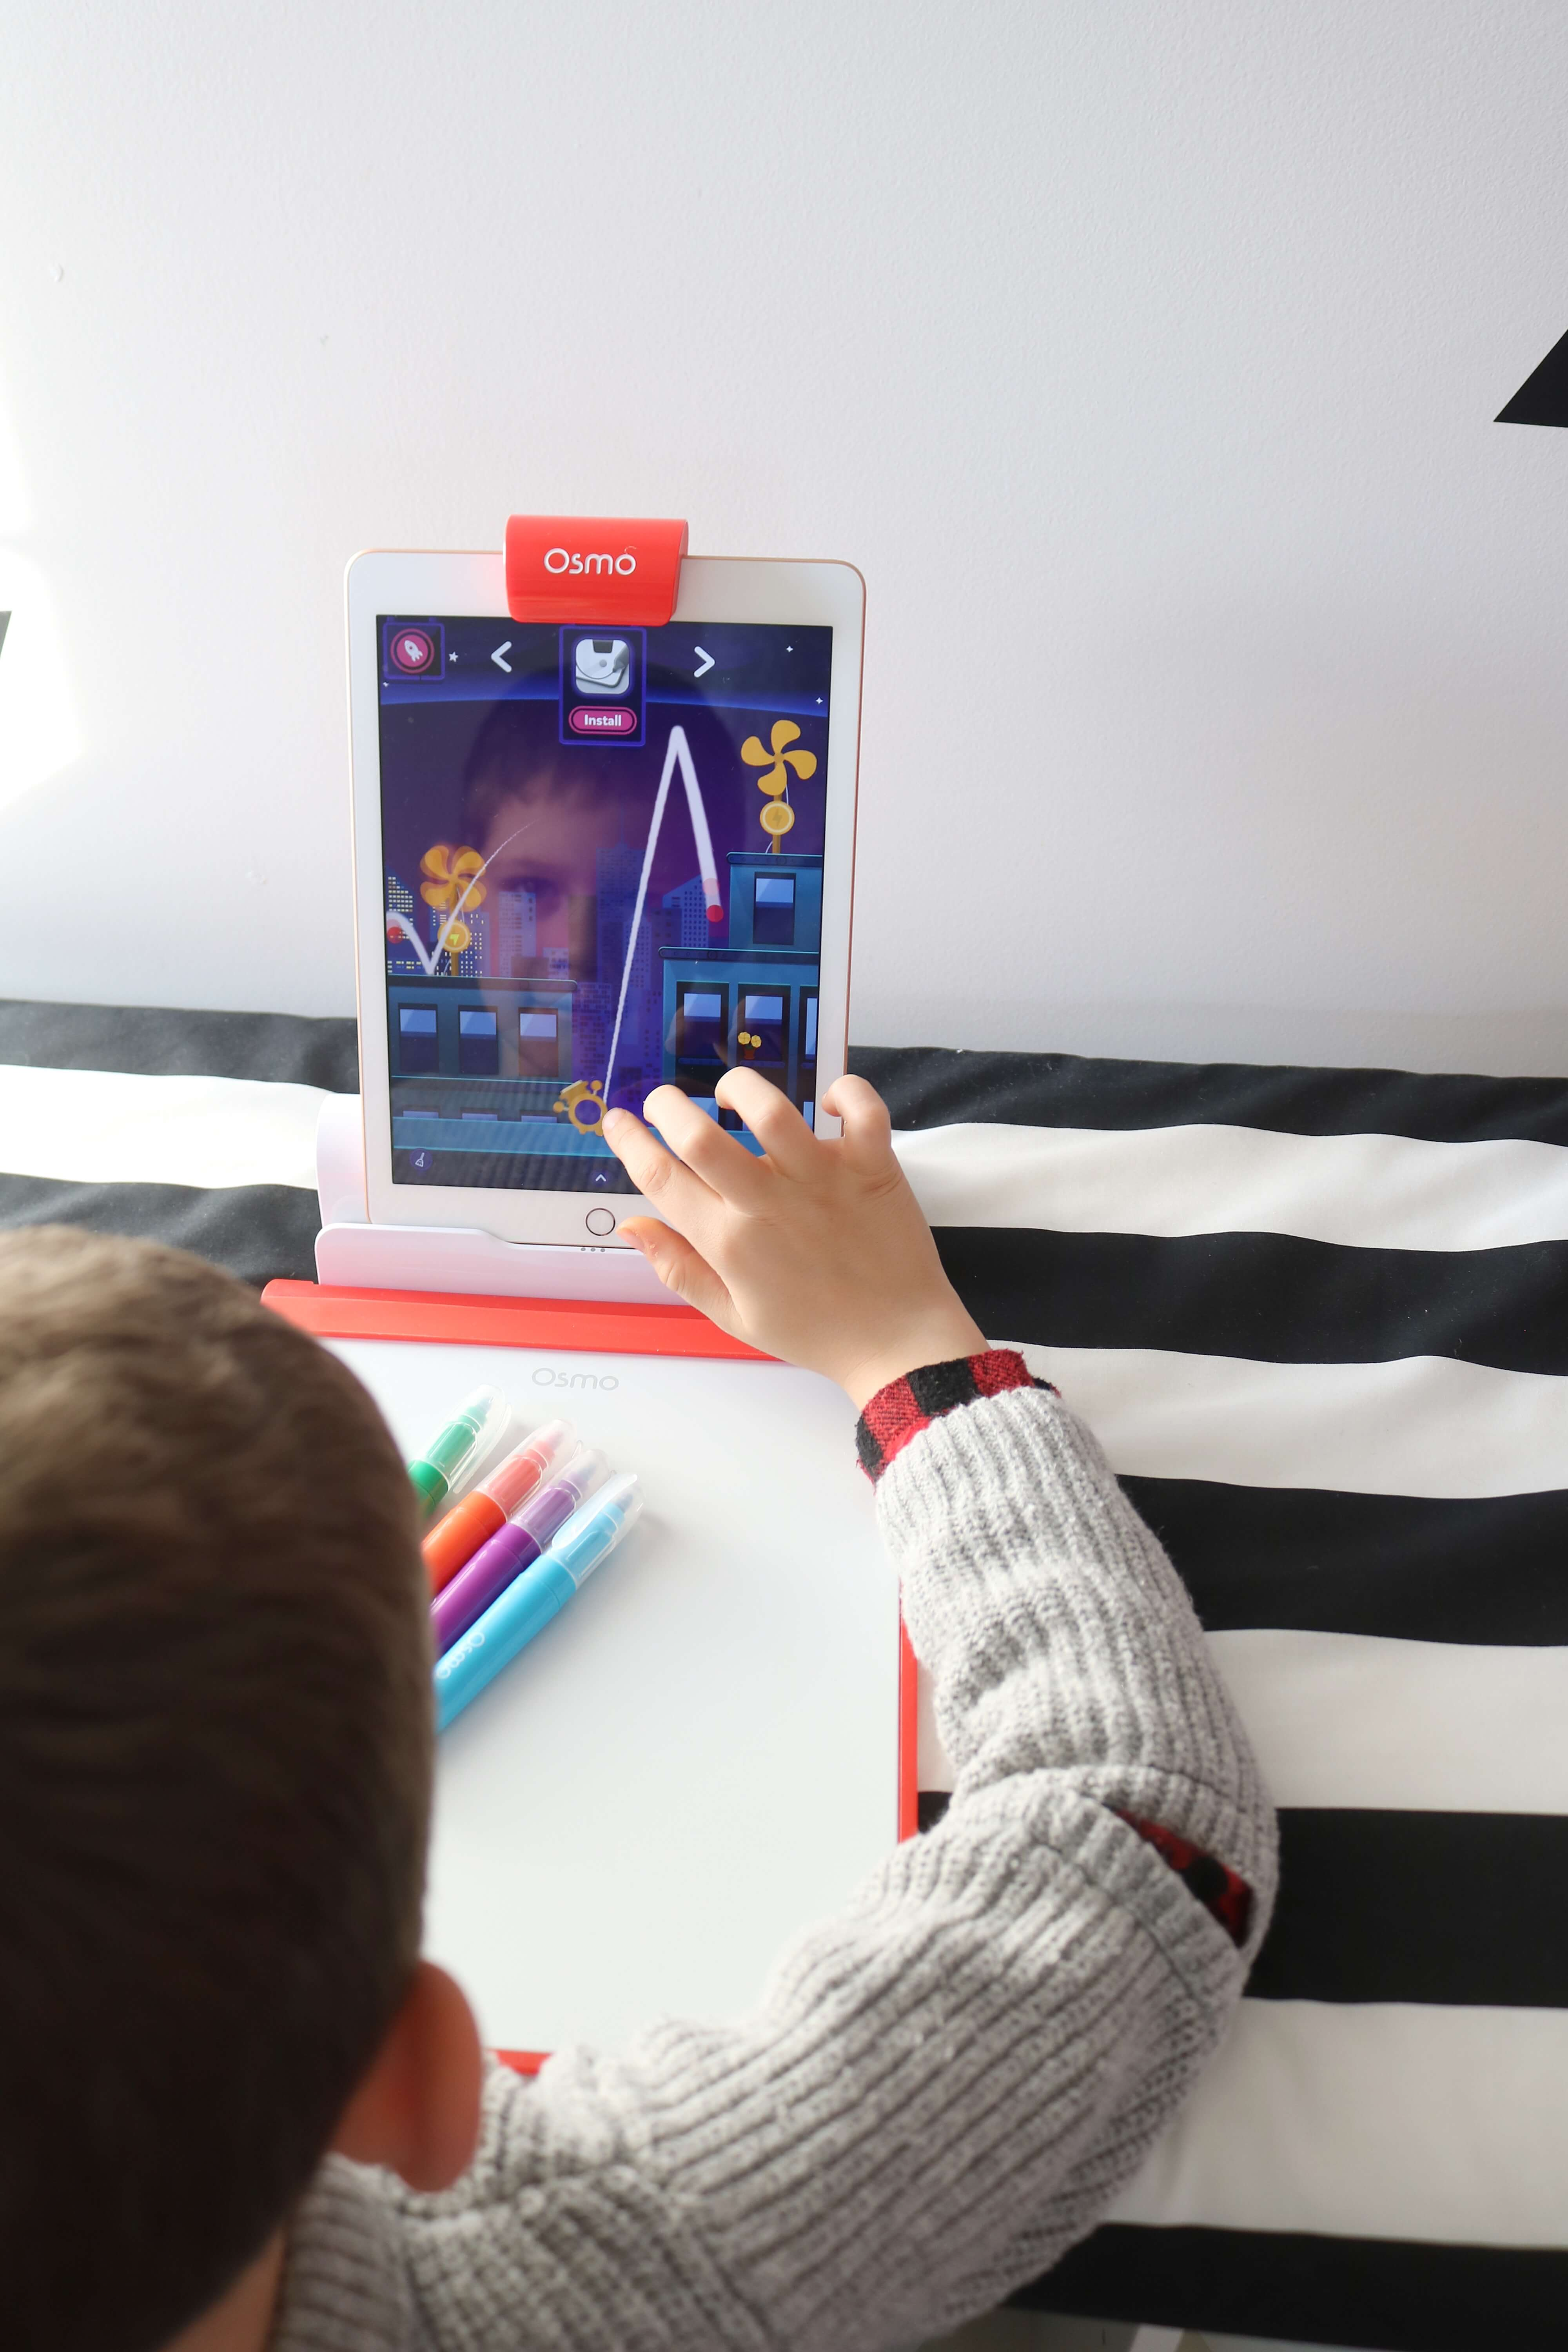 Review of the Osmo Creative Creative Starter Kit